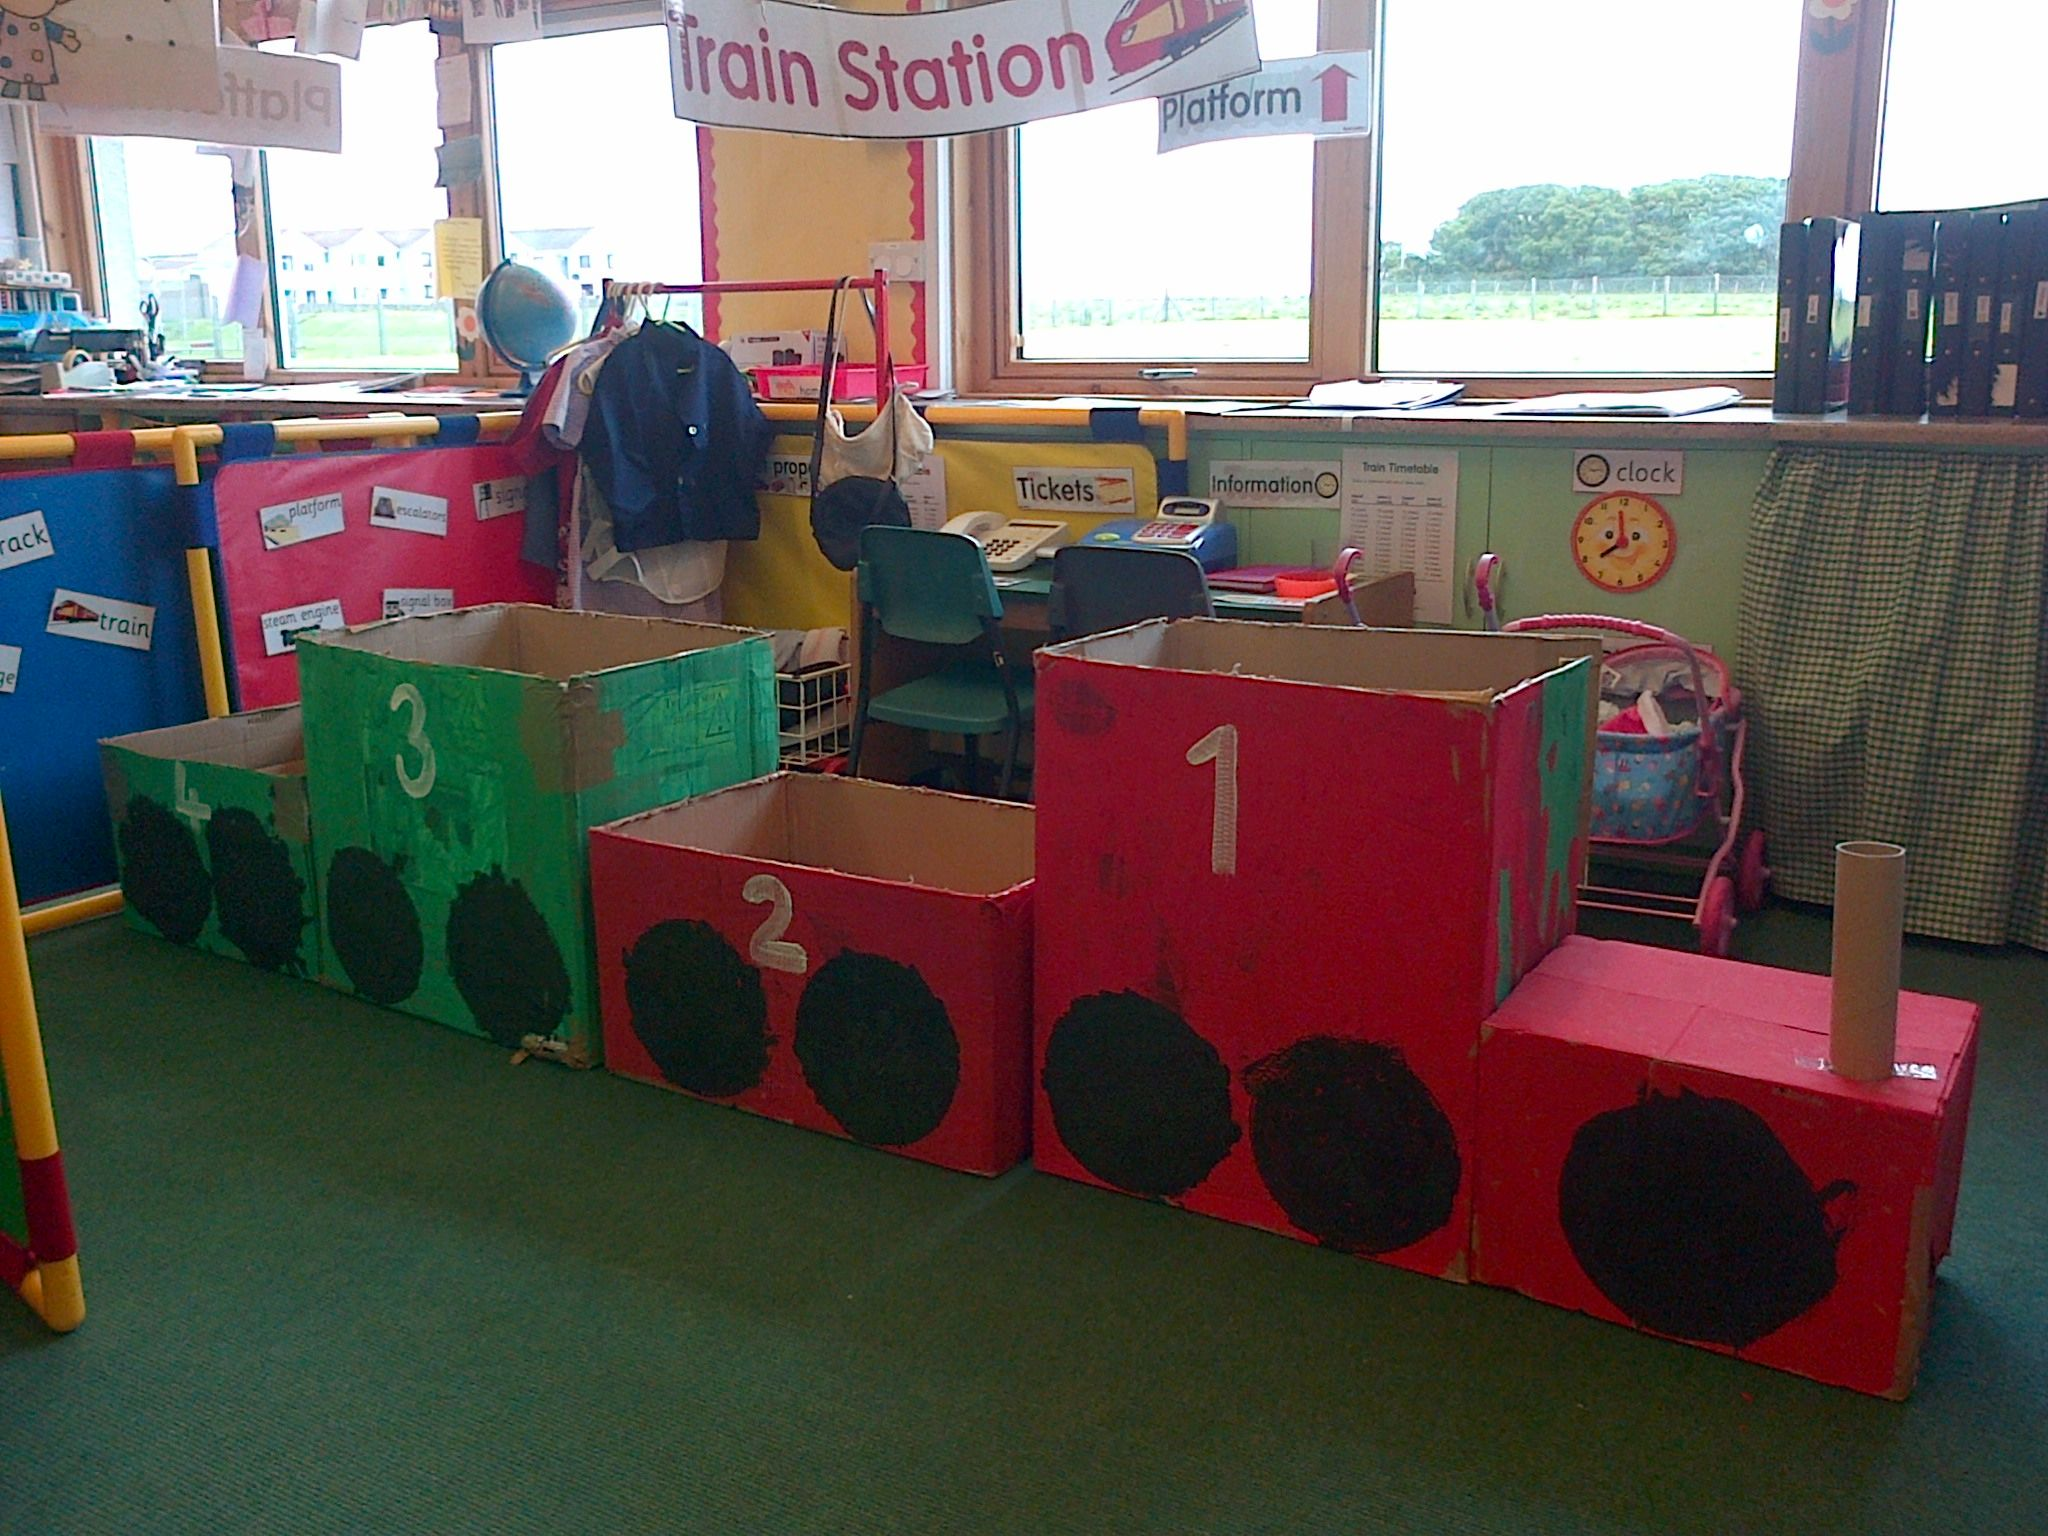 role play train station for nursery have fun kidos sabrina pinterest rollenspiel. Black Bedroom Furniture Sets. Home Design Ideas